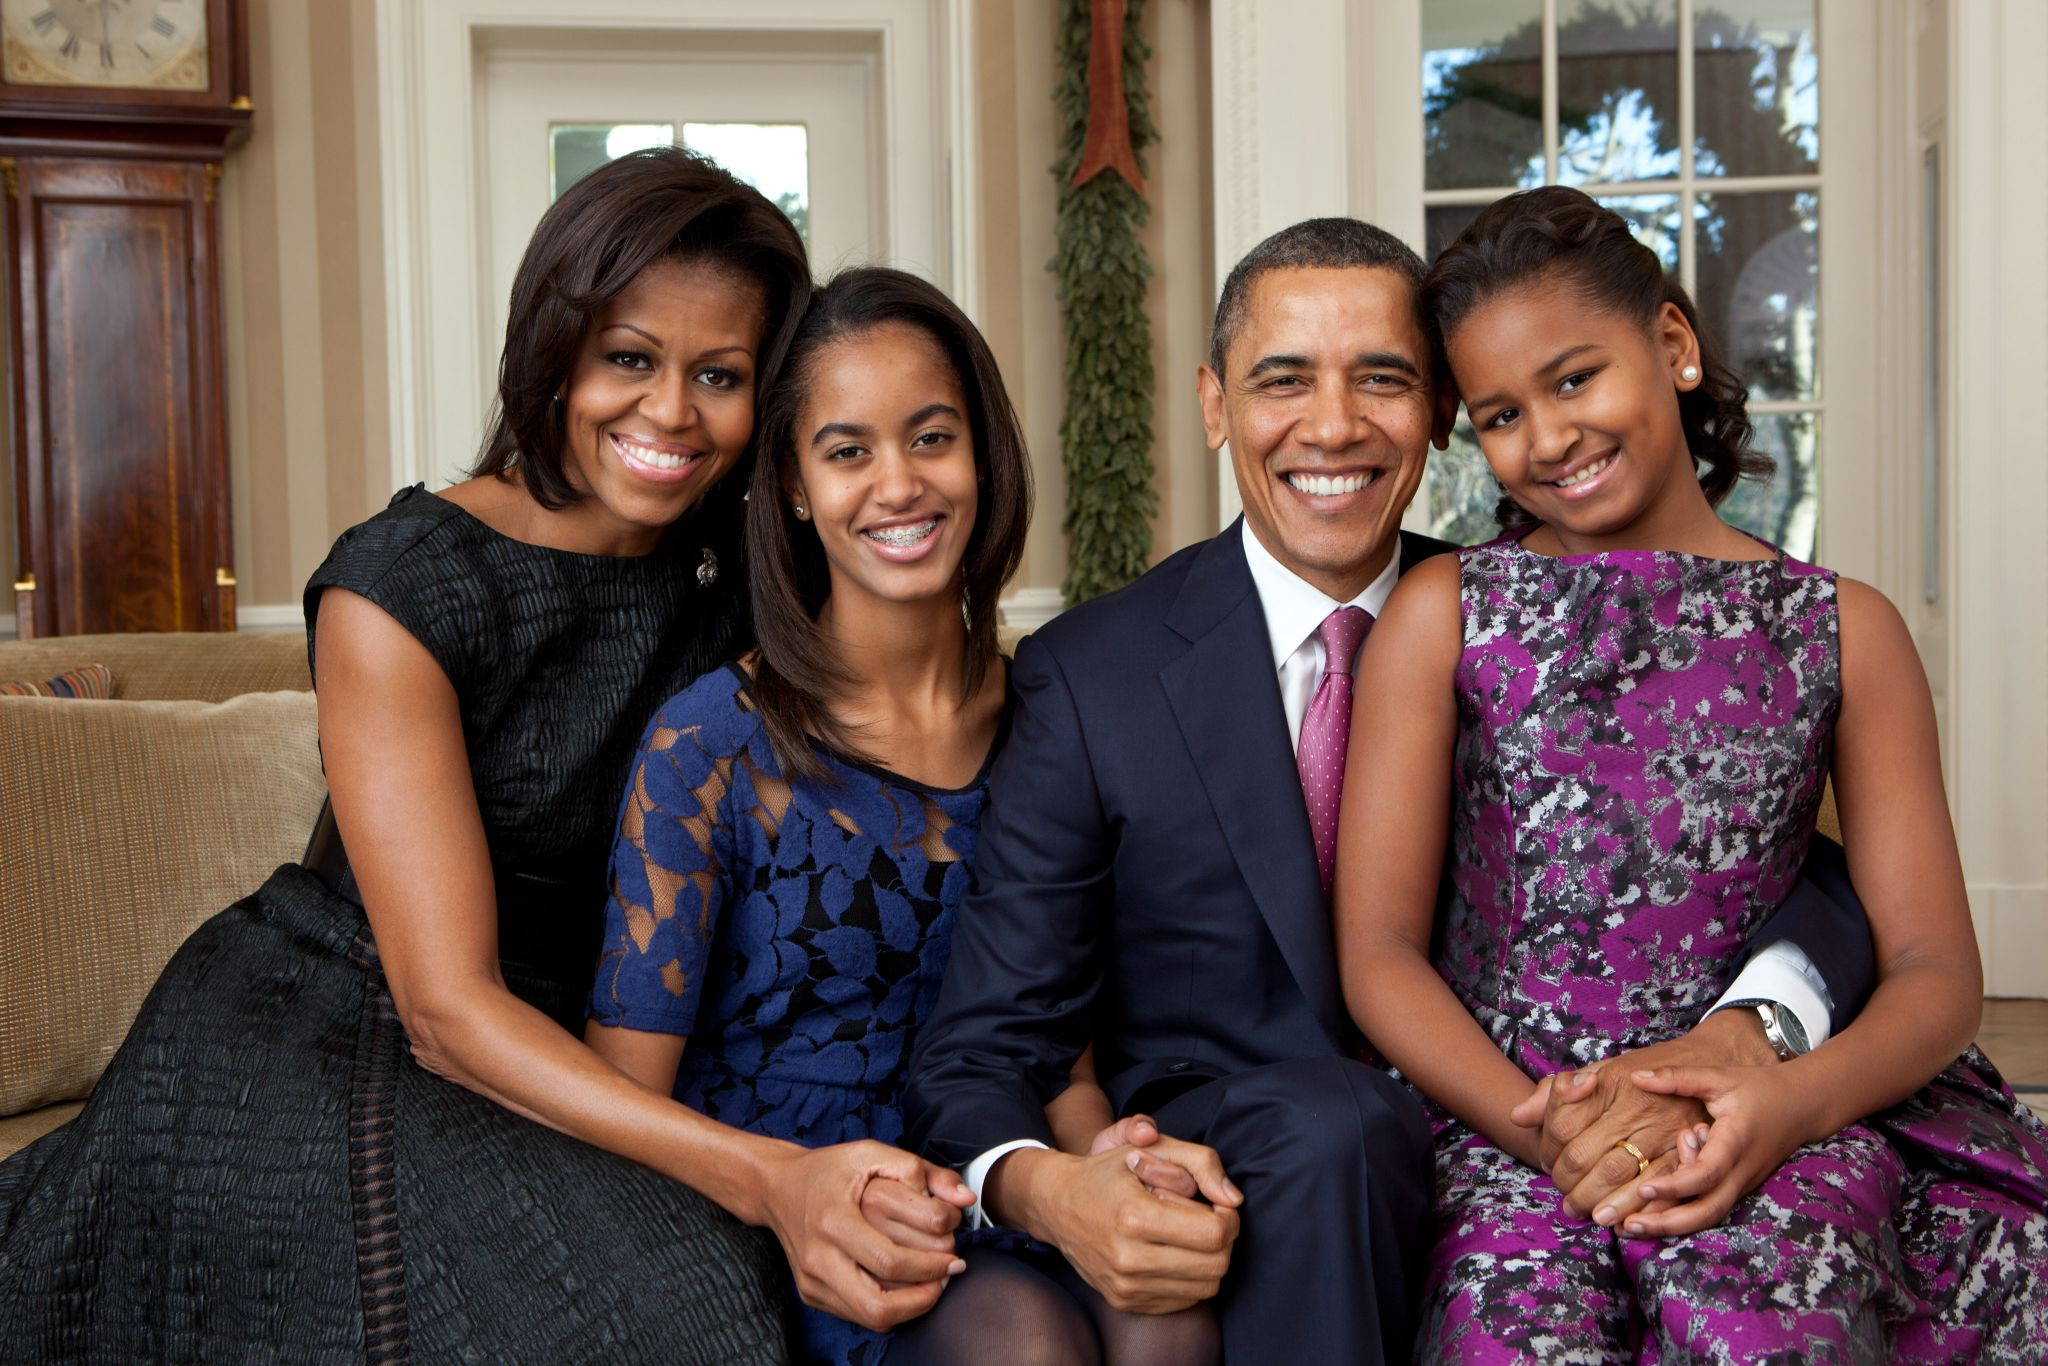 an analysis of michelle obamas speech on food marketing and advertising towards children